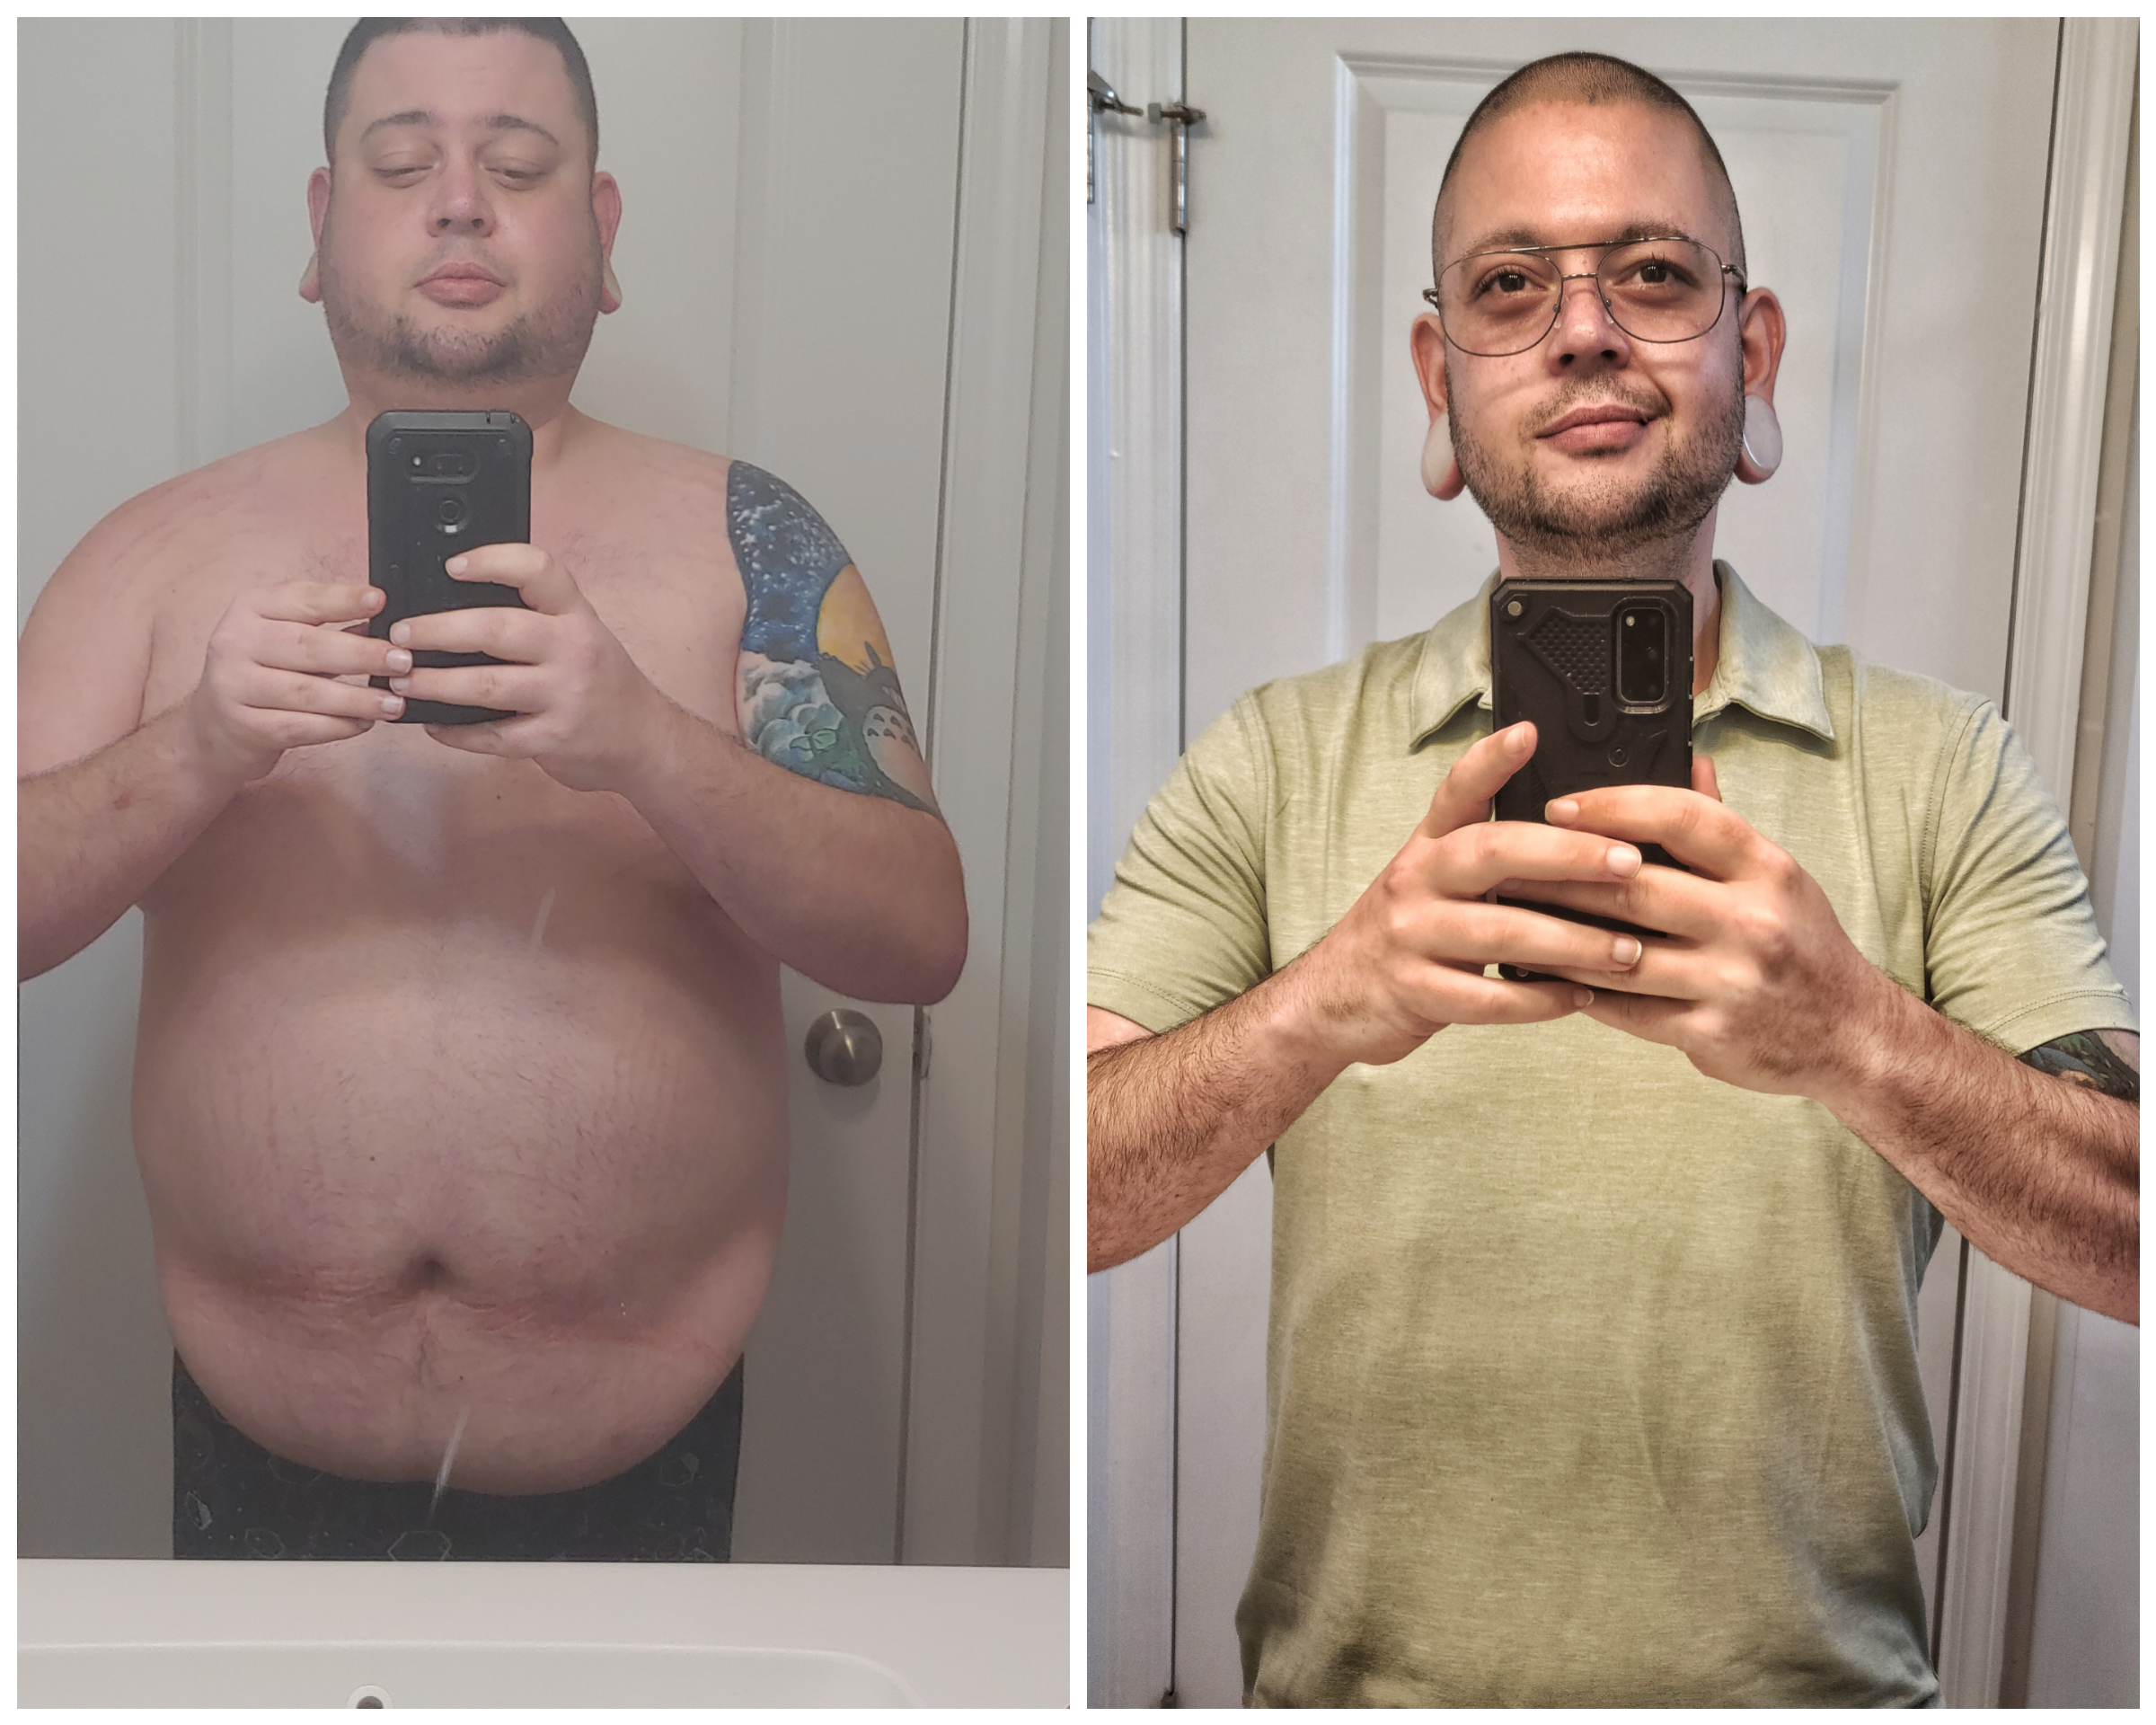 5 feet 7 Male 91 lbs Weight Loss Before and After 260 lbs to 169 lbs